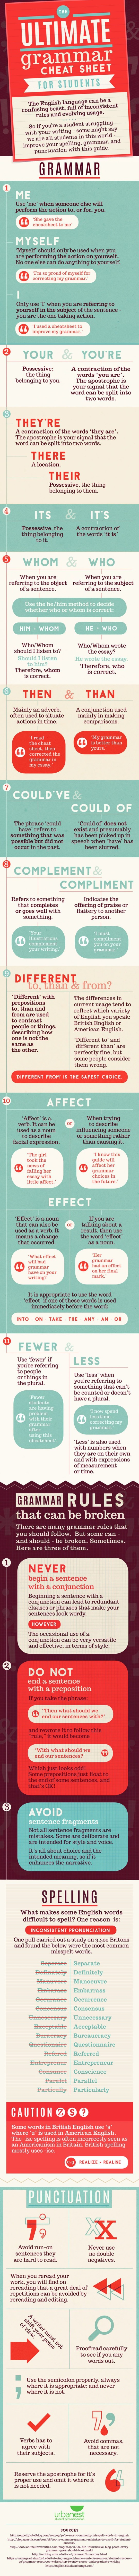 The ultimate English grammar cheat sheet for students #infographic